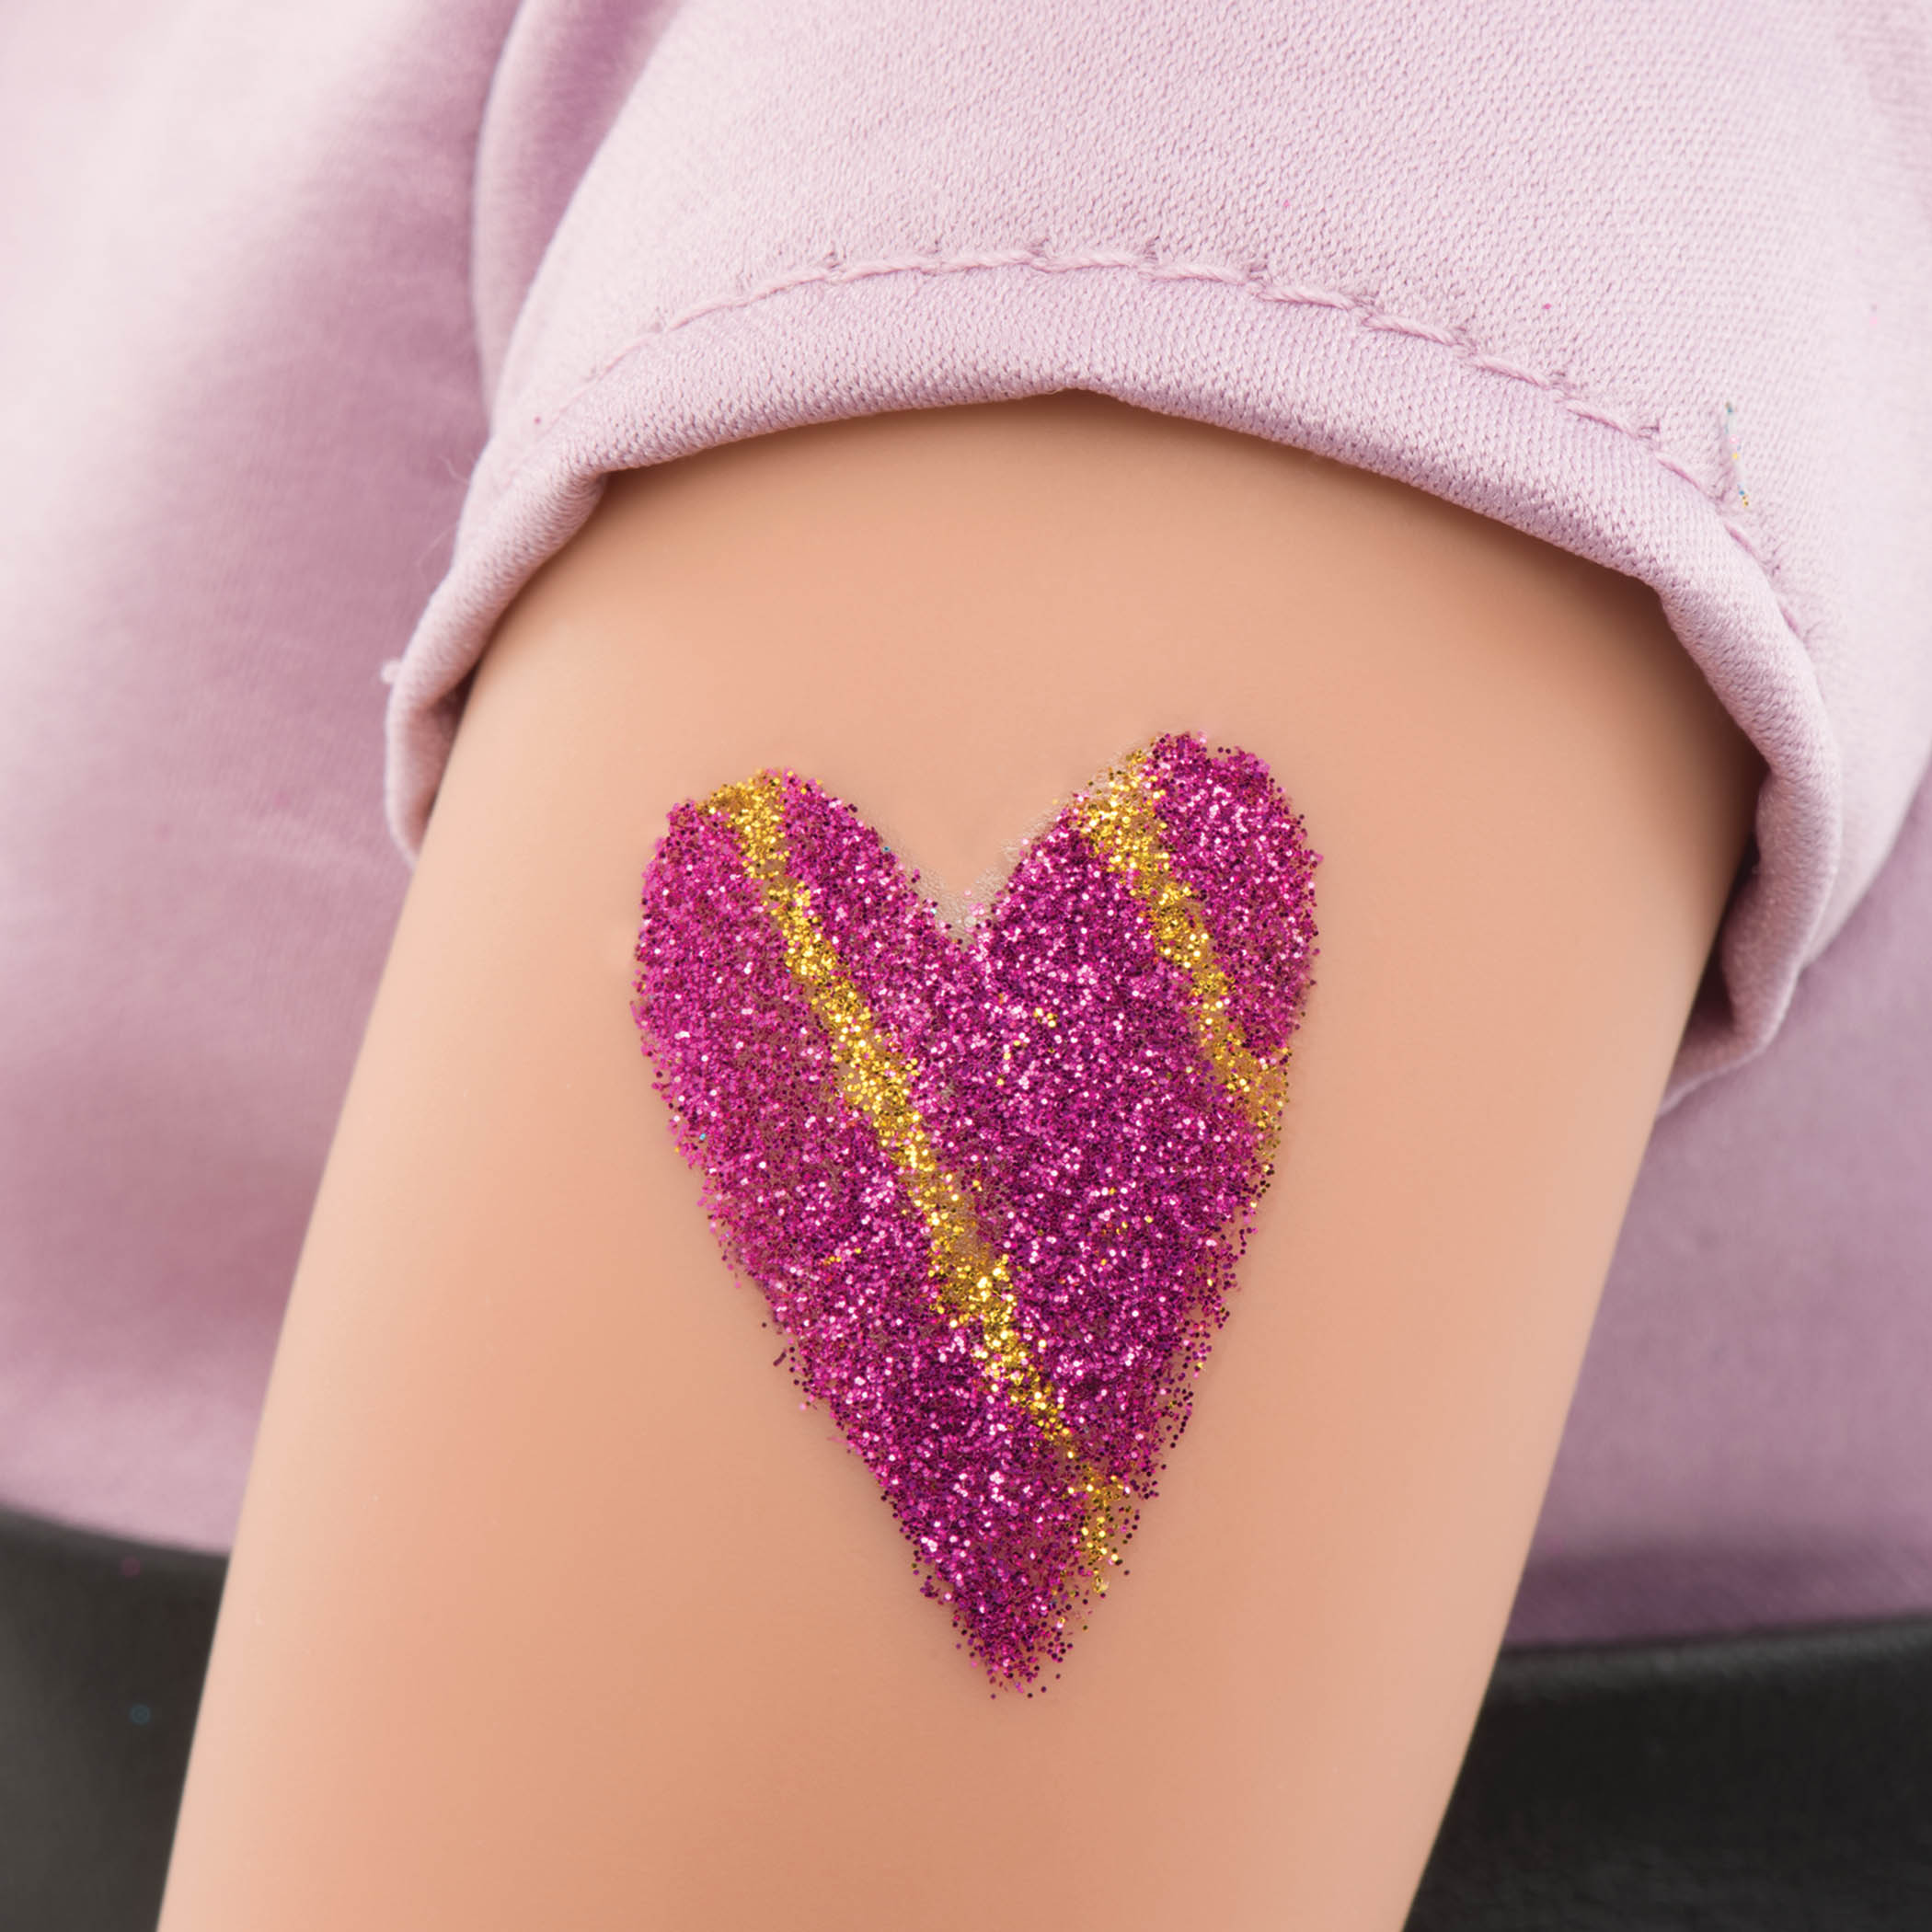 Detail of glitter tattoo on arm